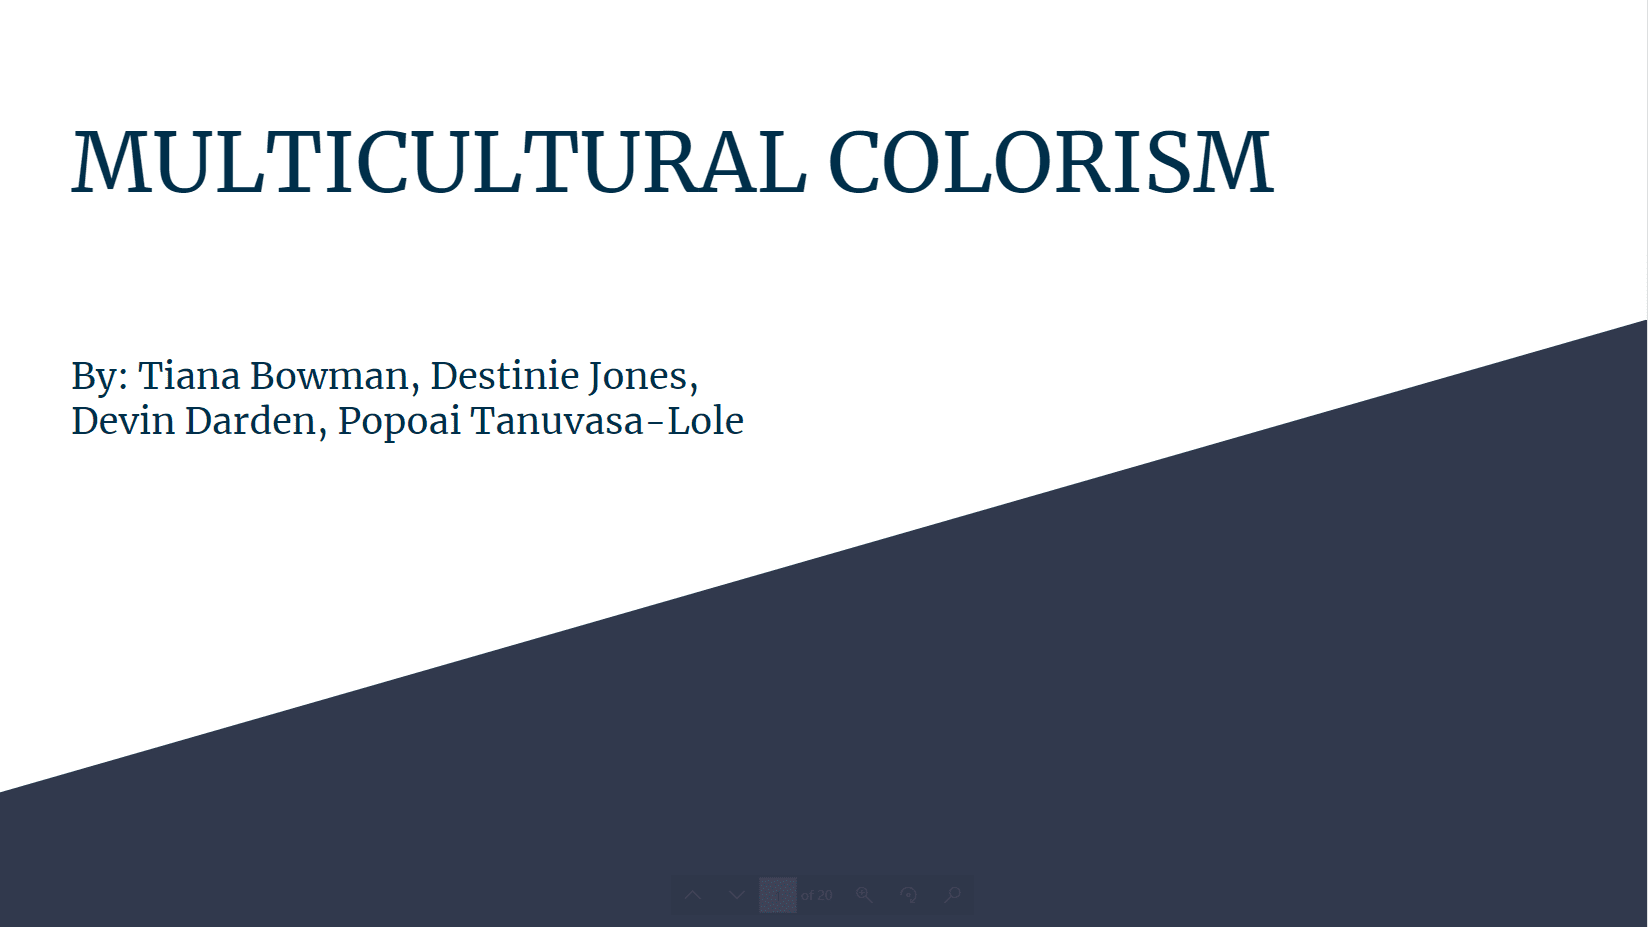 Multicultural Colorism title card of slidedeck